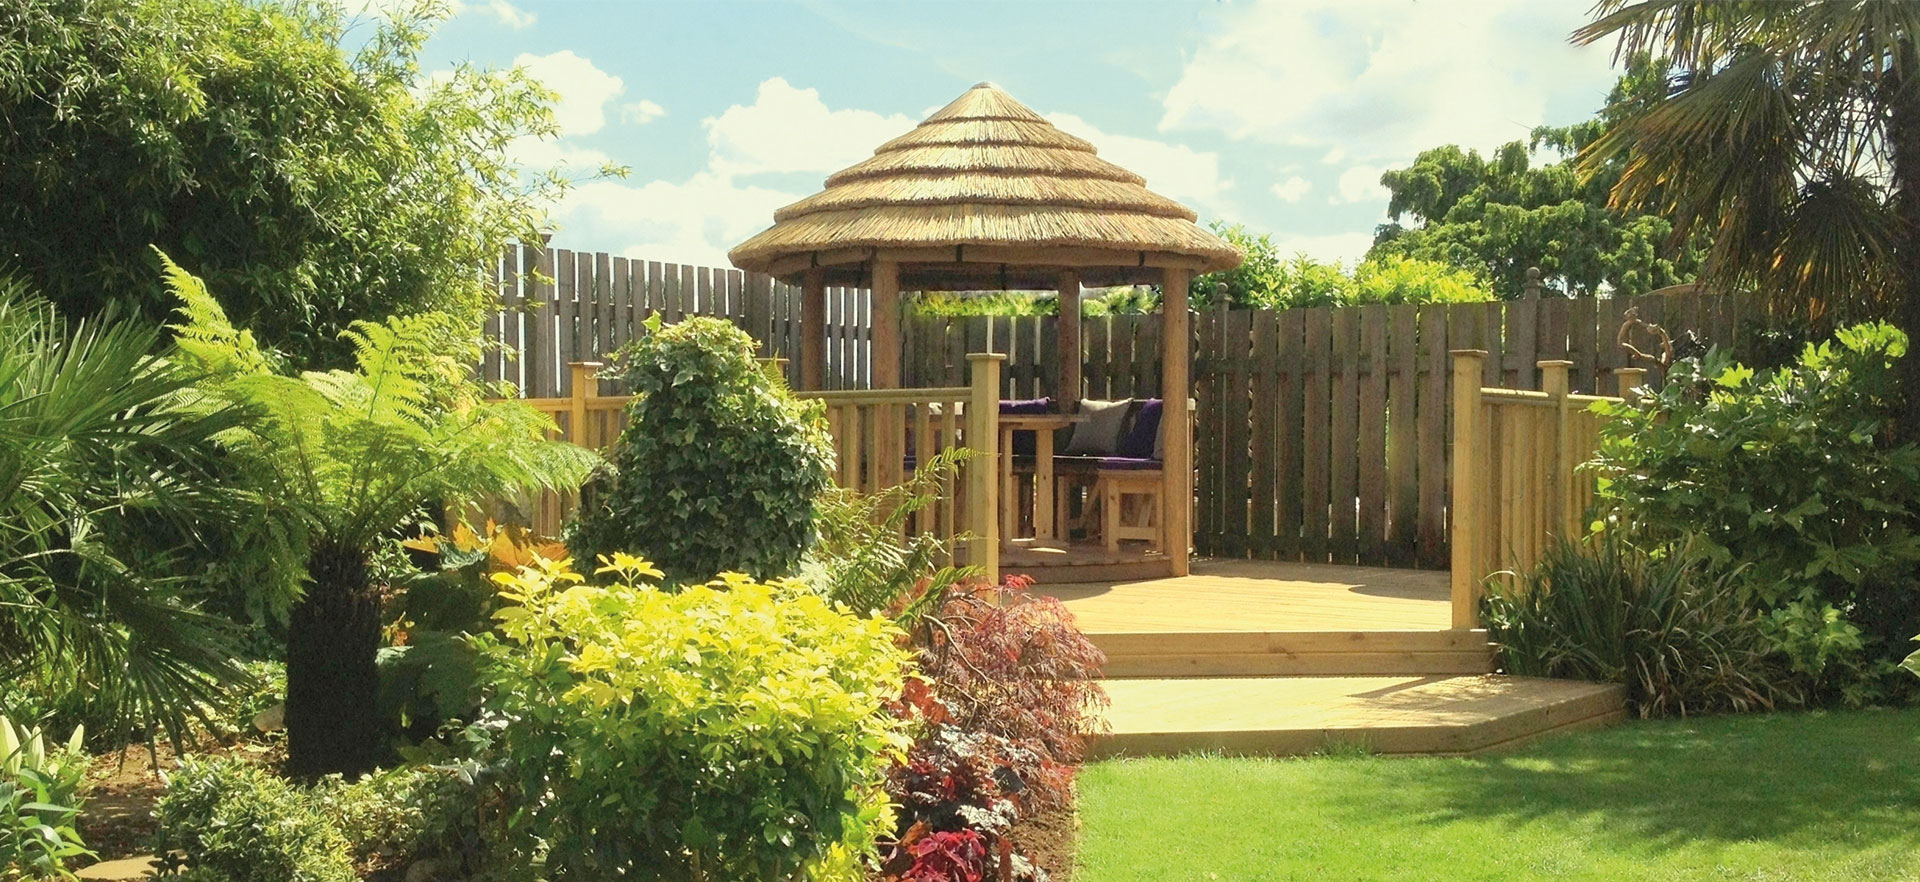 2.5 metre thatched roof gazebo on raised deck in garden